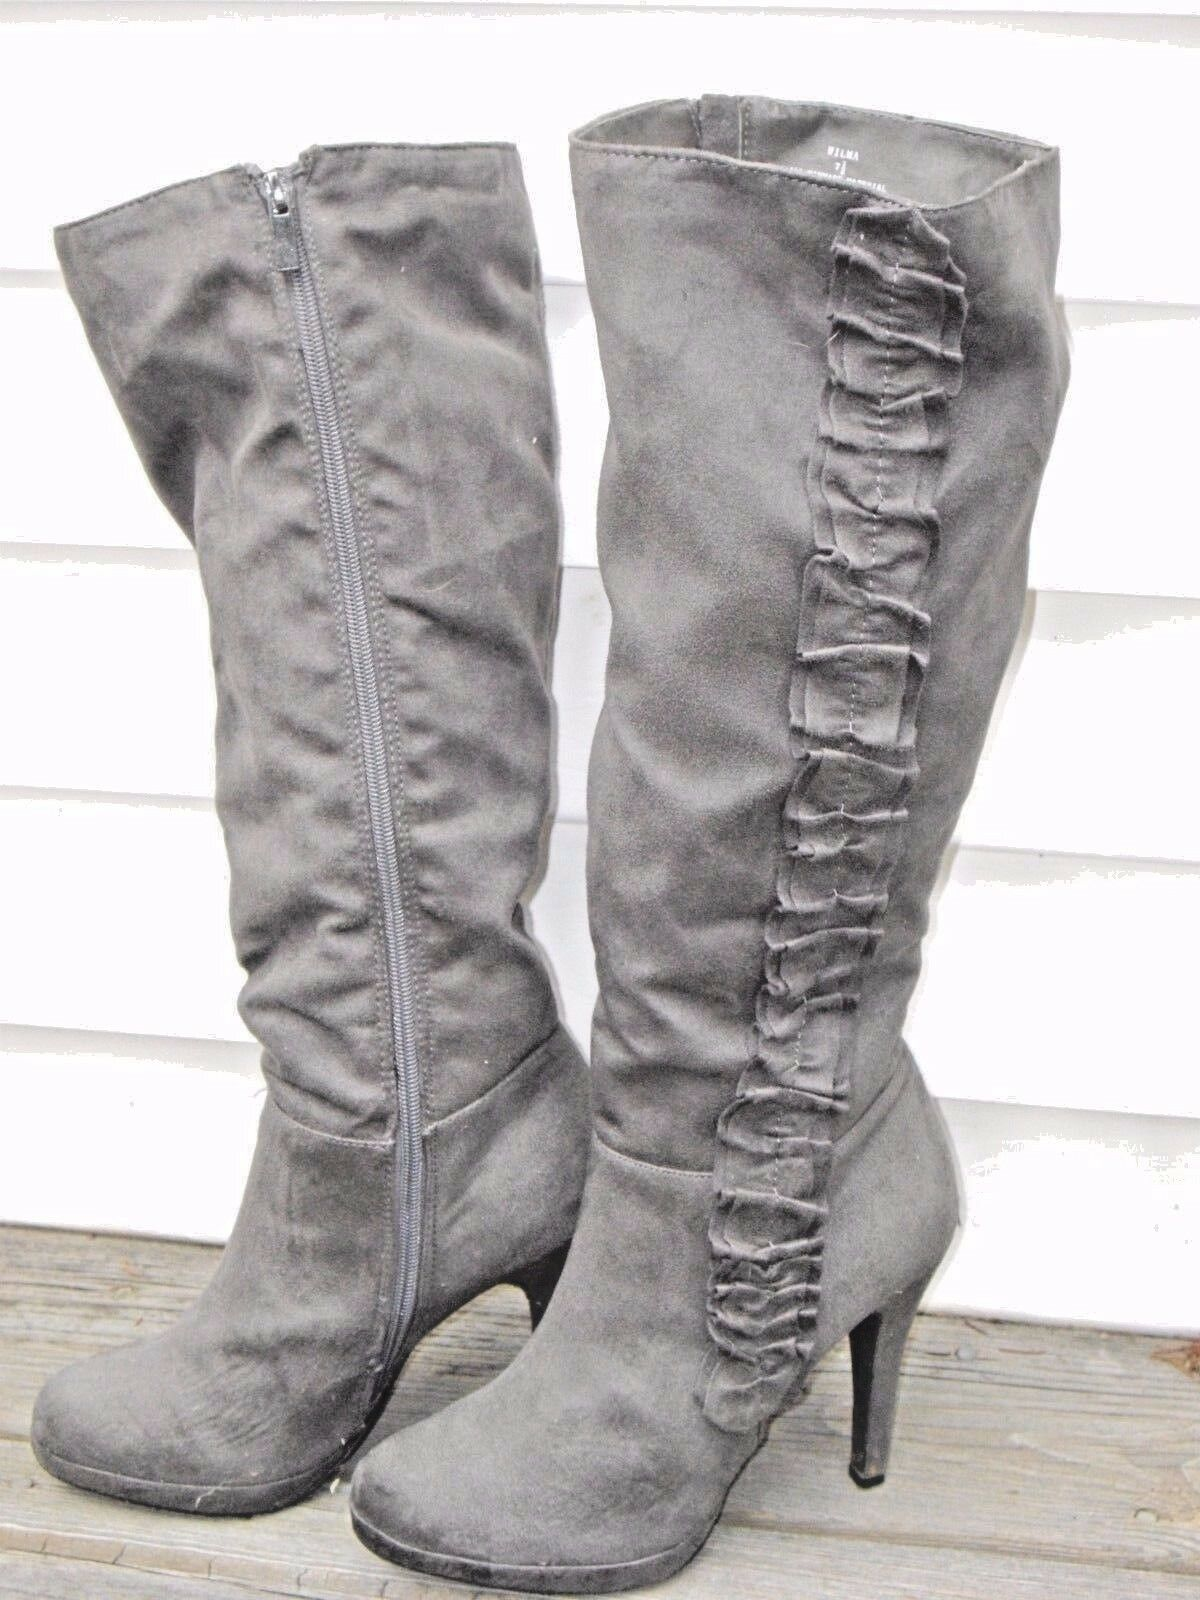 Woman's Grey Ruffle Suede Type High 7.5 Heel Stiletto Dress Boots 7.5 High 808140